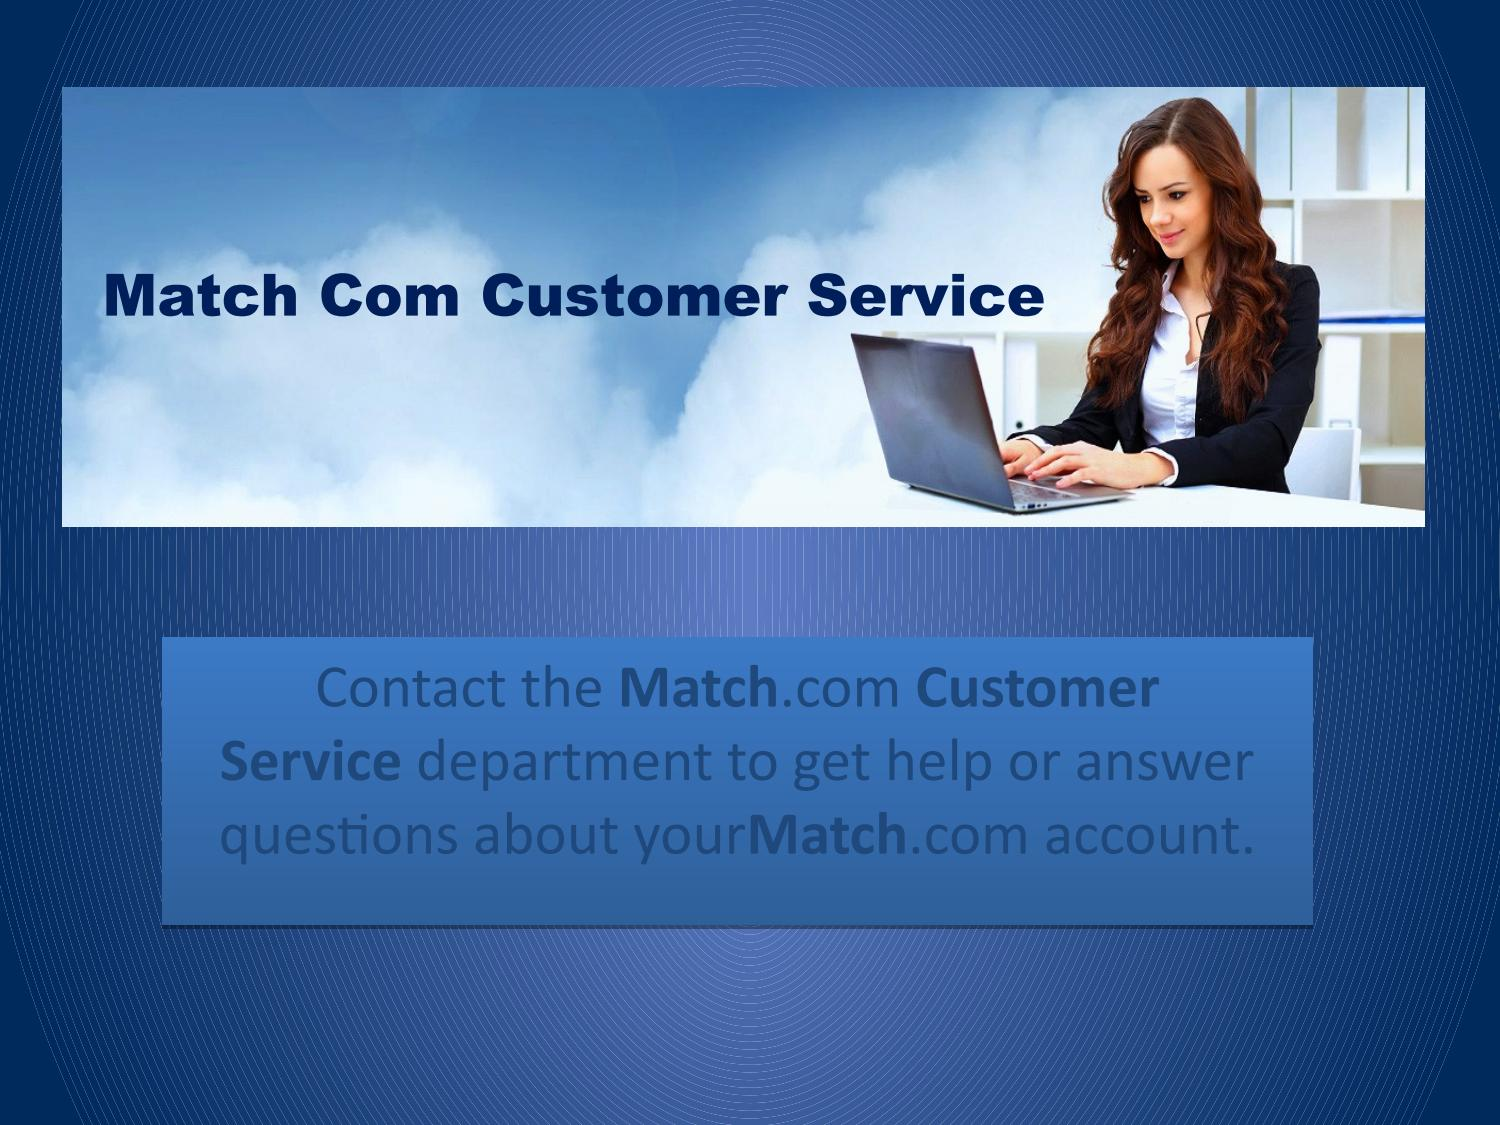 Customer service phone number for match com